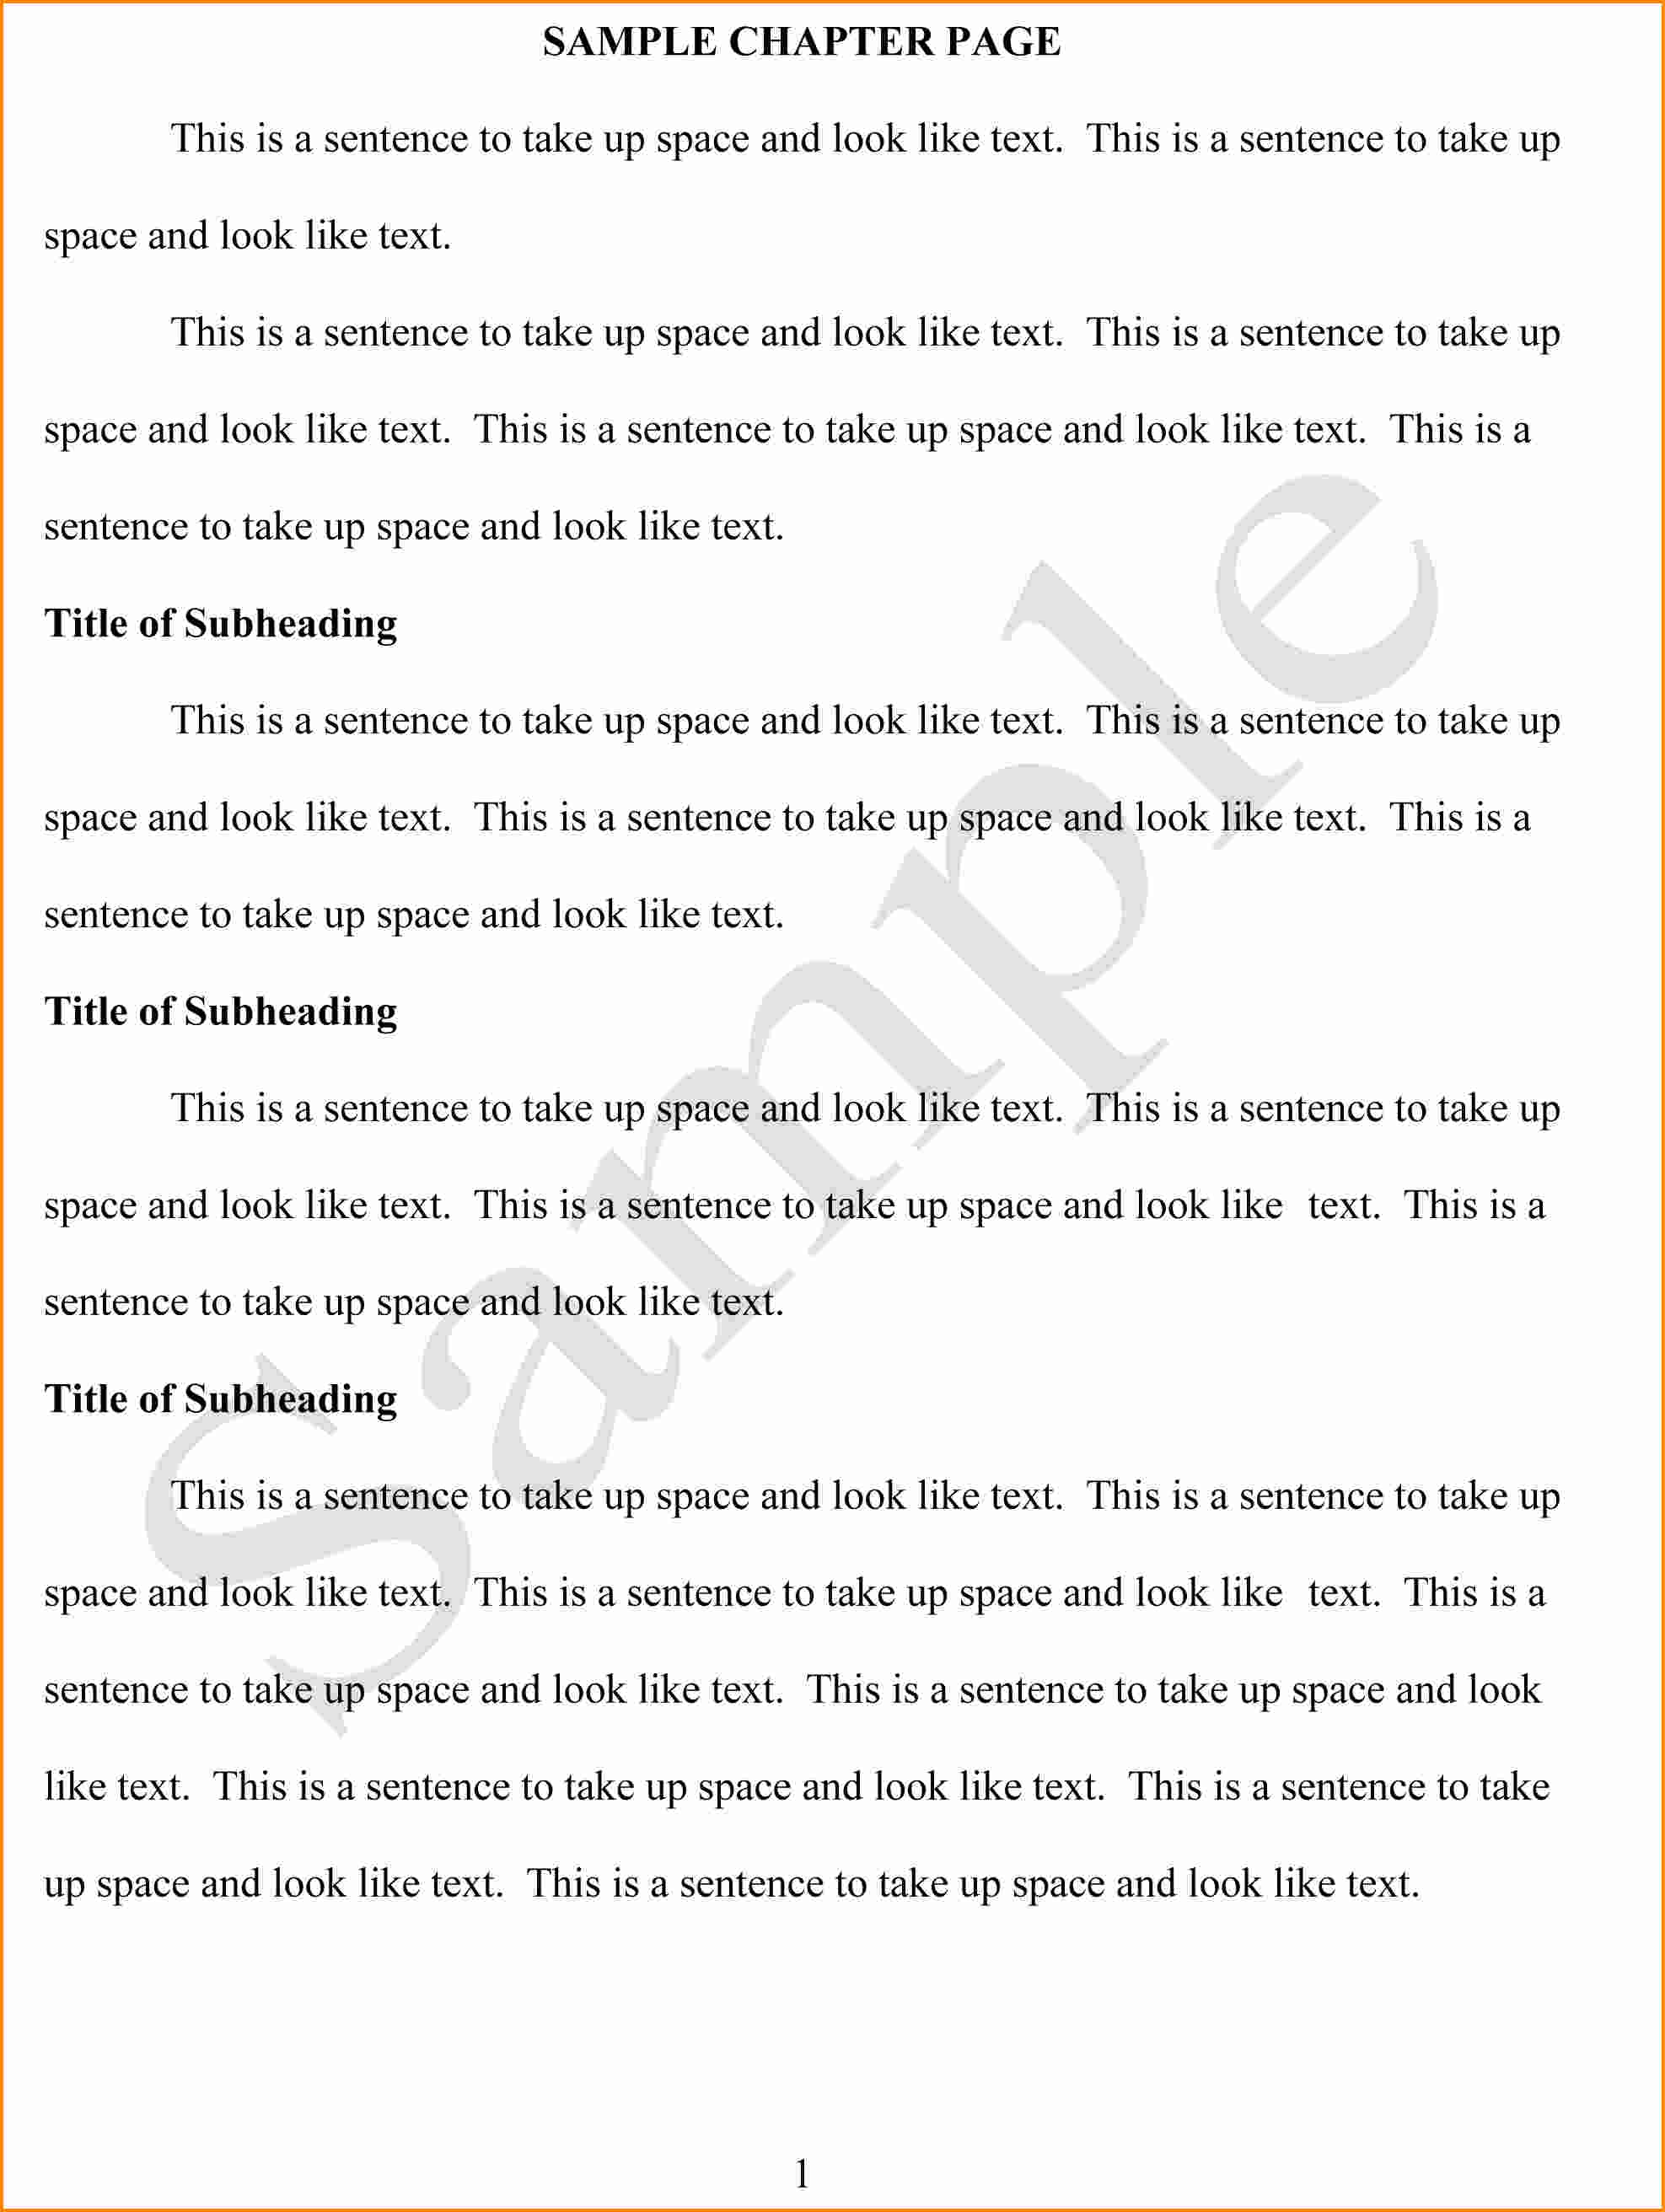 001 Thesis Statement Examples For Essays Essay Example Psychology Impressive Analysis Response Papers About Yourself Full